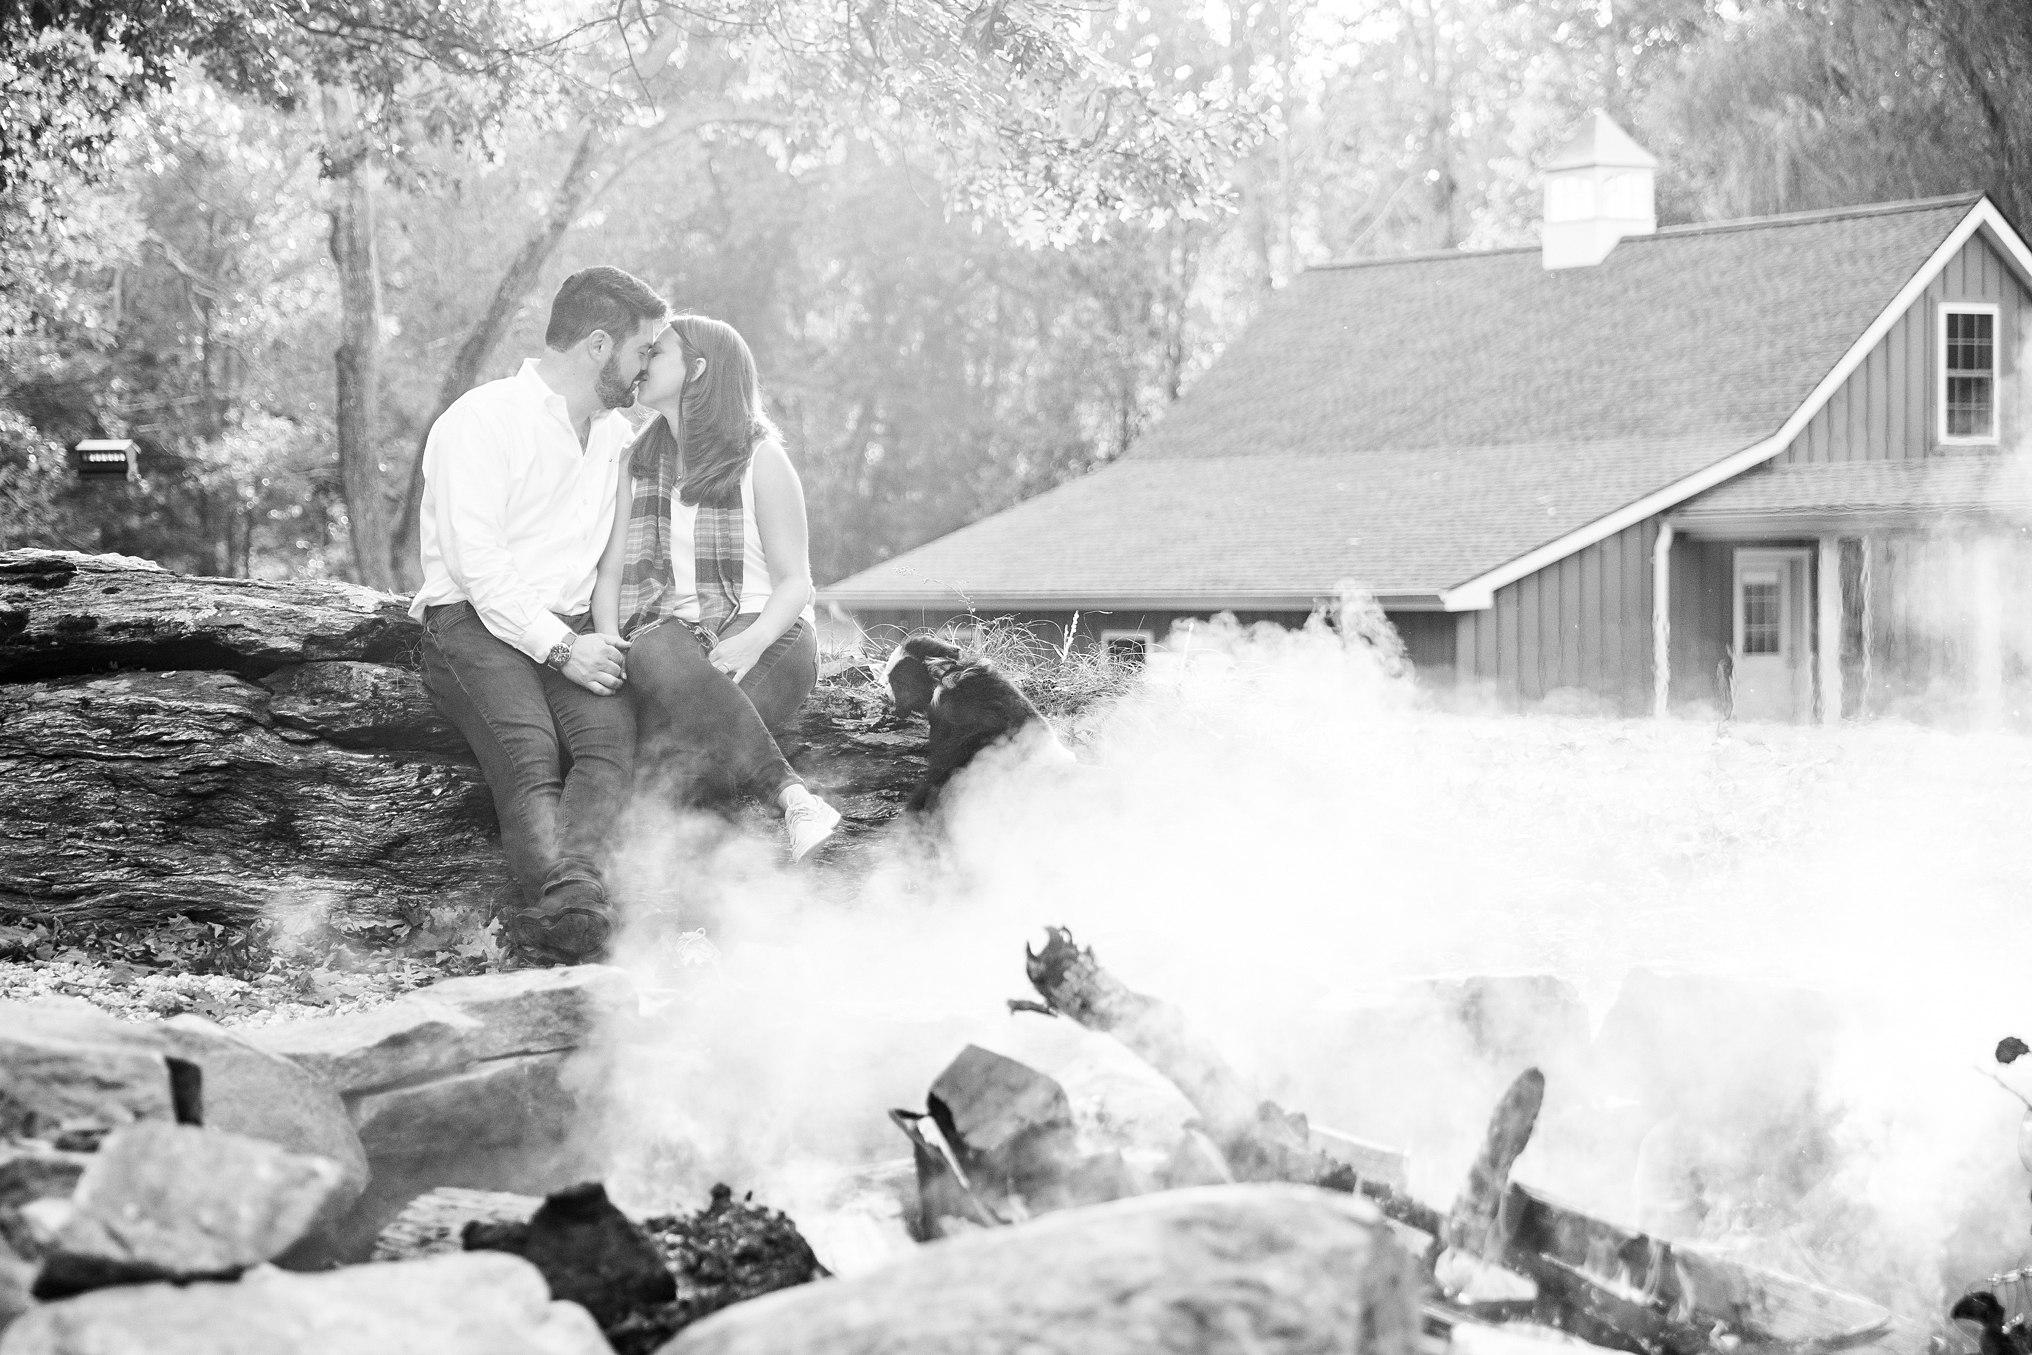 A cute fall backyard engagement session by Lyme CT wedding photographer and videographer team The Ewings Photography Studio.